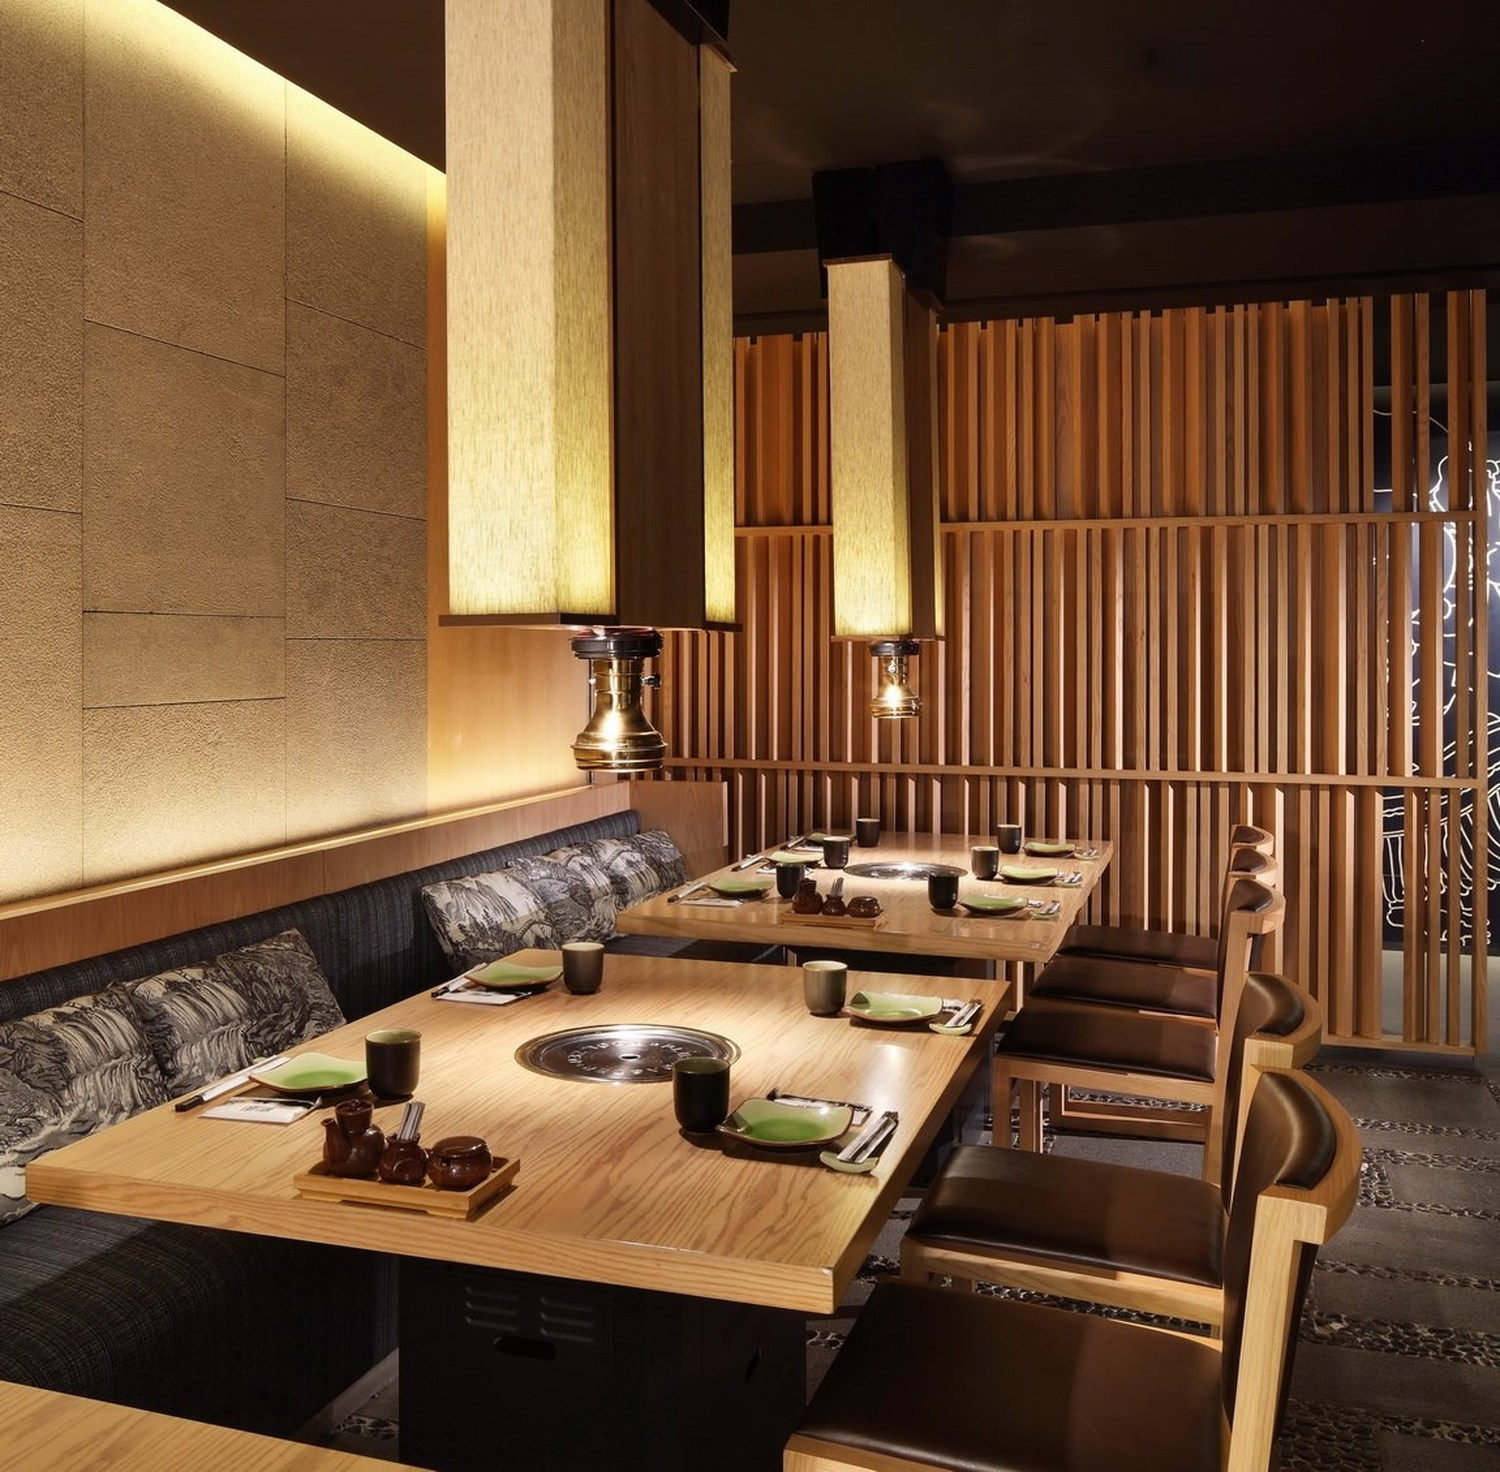 Matsumoto Restaurant By Golucci International Design